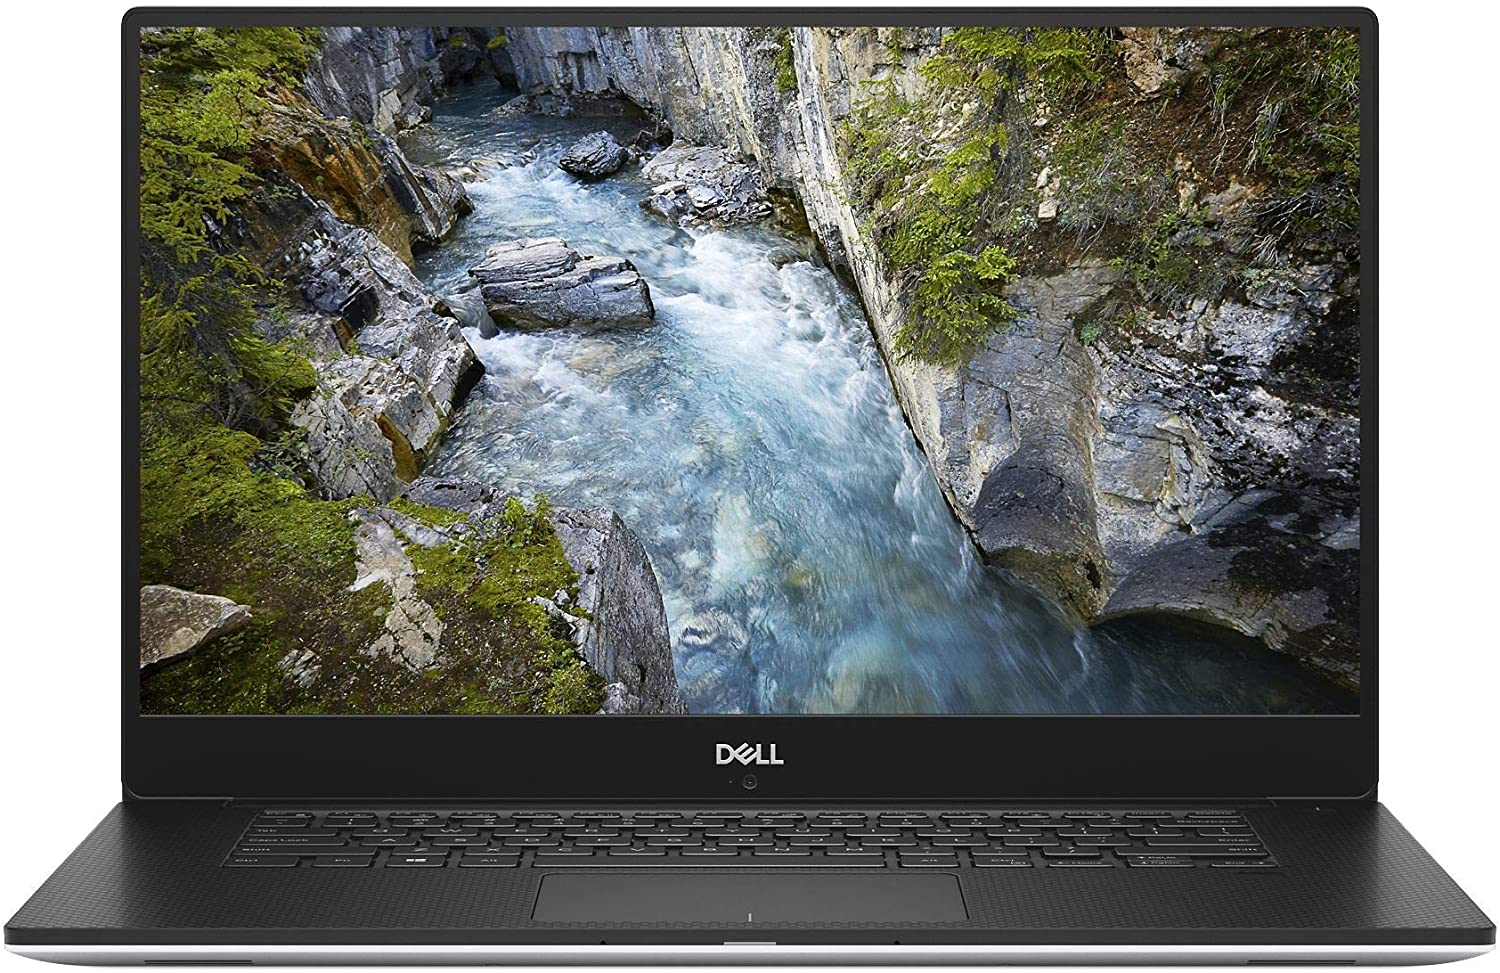 "Dell Precision 5530 1920 X 1080 15.69"" Touchscreen LCD 2-in-1 Mobile Workstation with Intel Core i7-8706G, 16GB RAM, 512GB SSD"